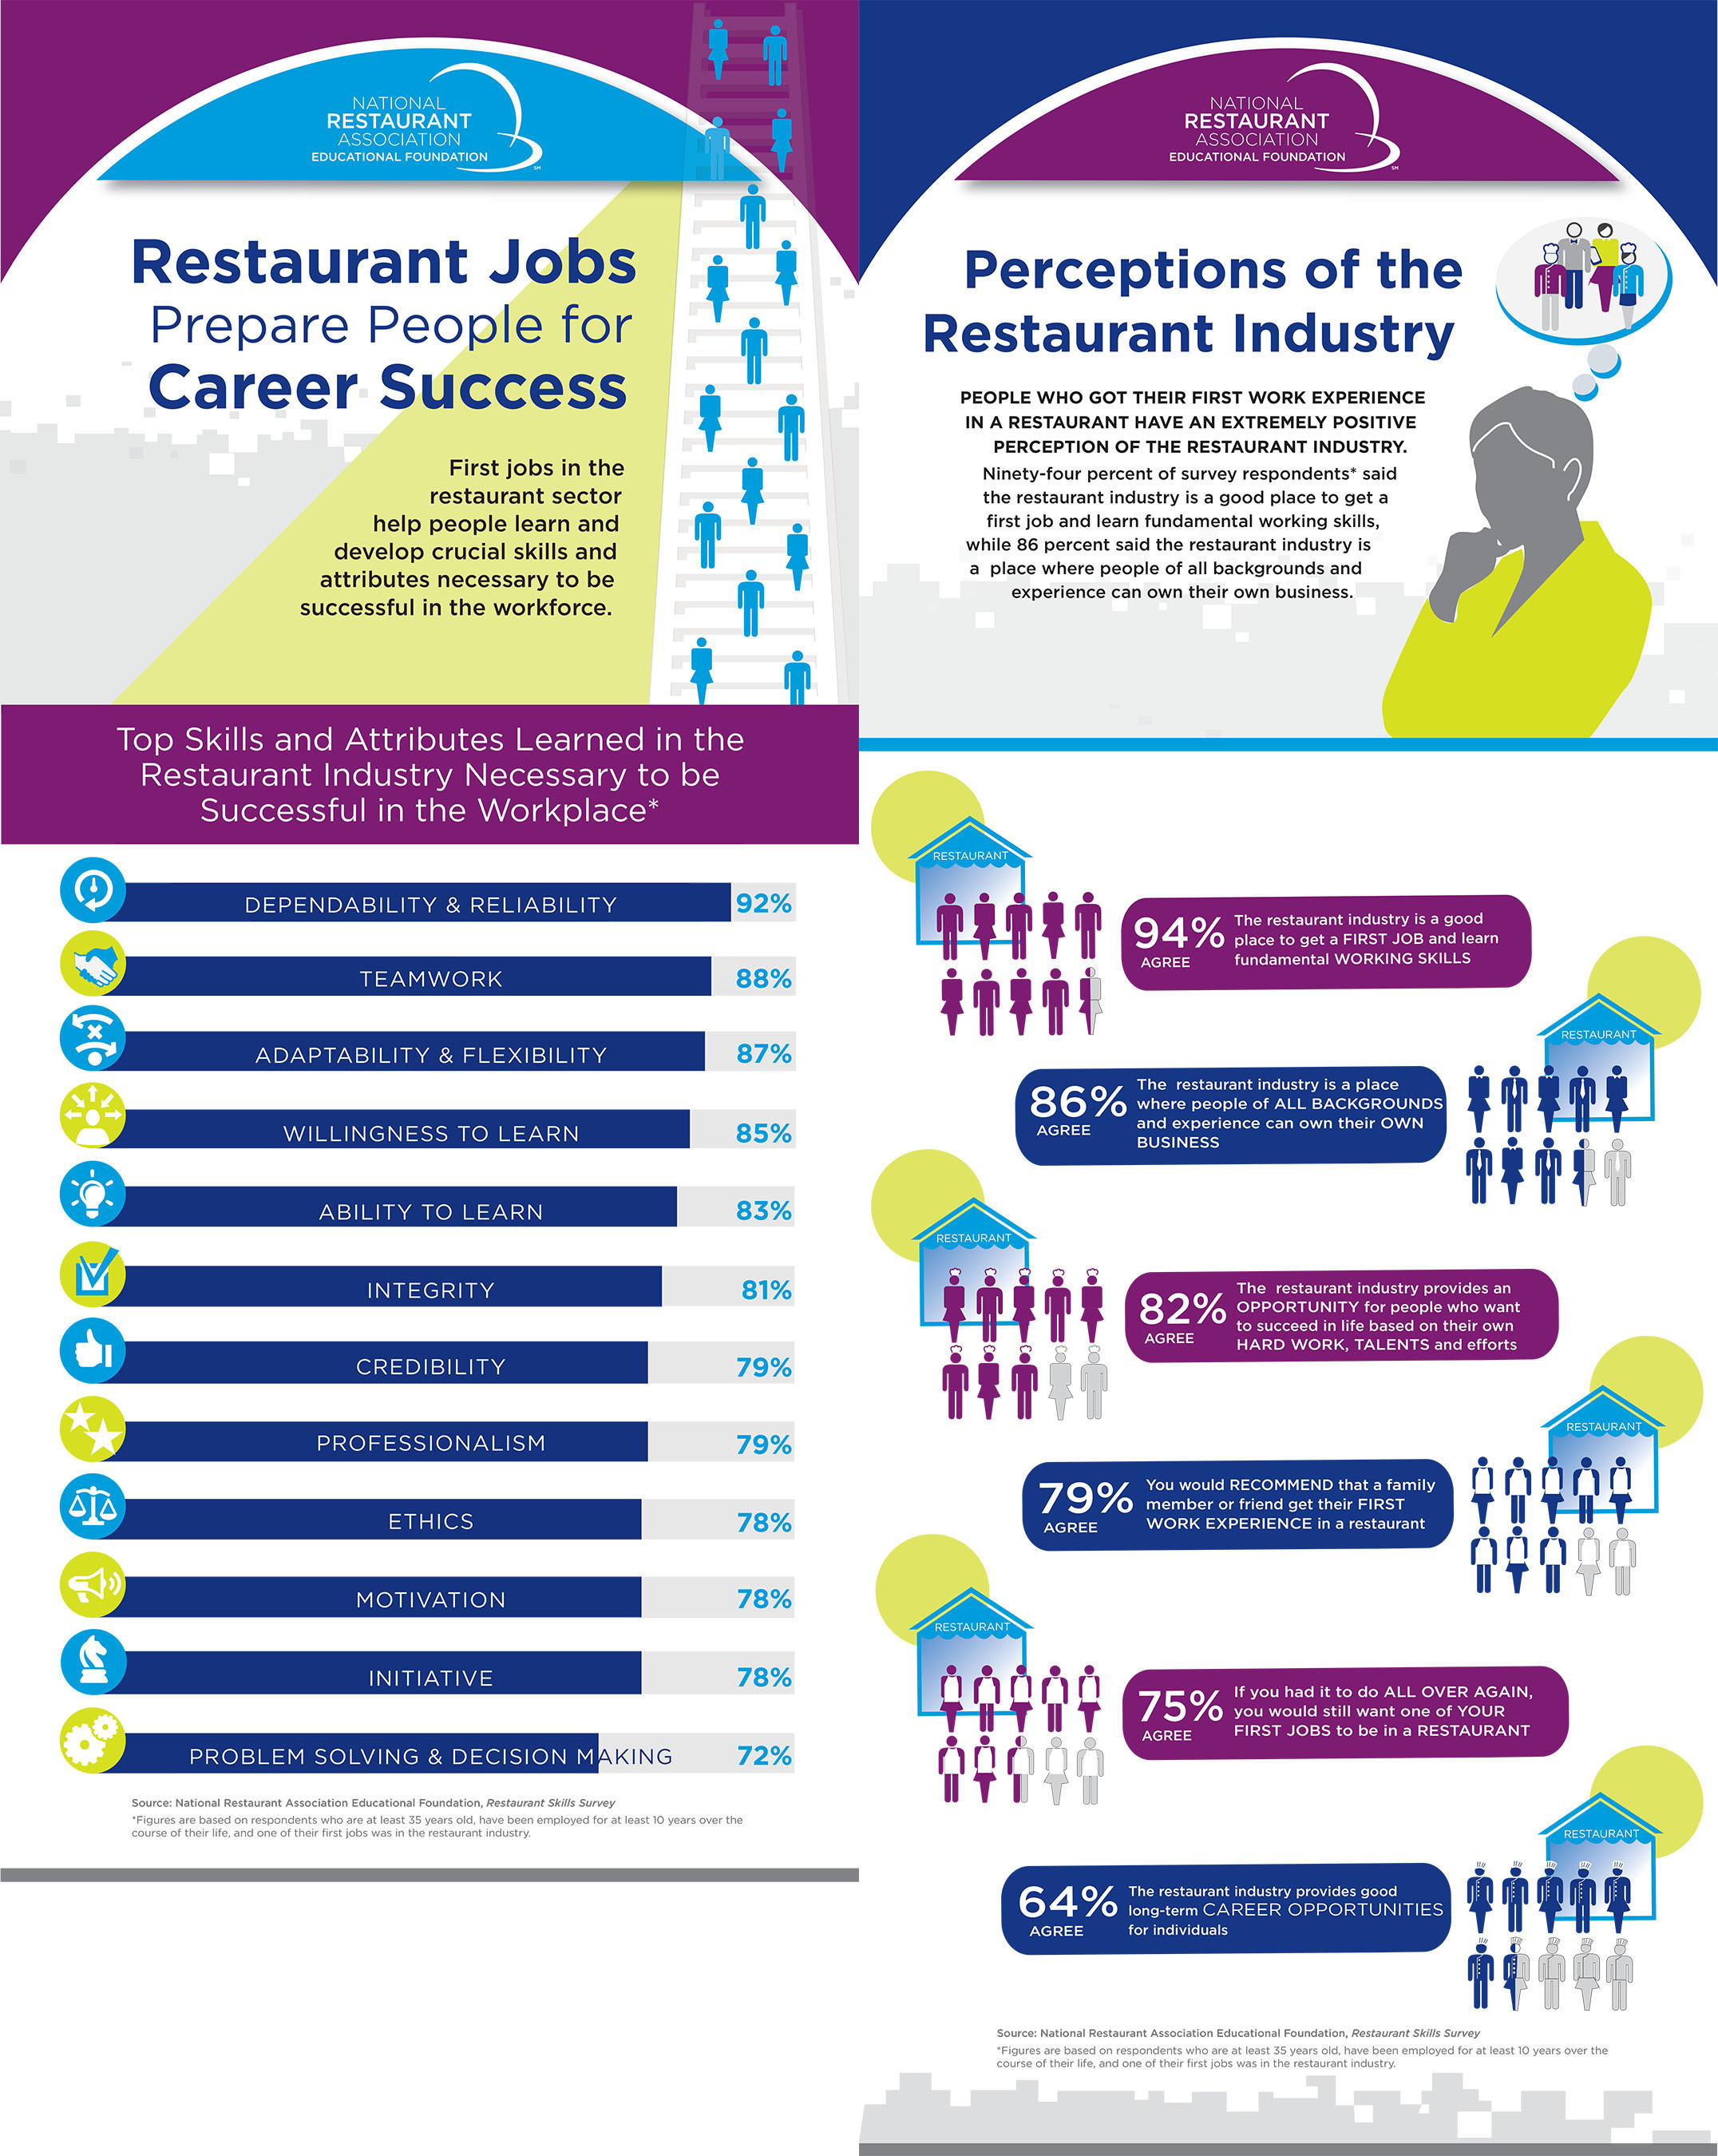 Research completed by the National Restaurant Association Educational Foundation shows that first jobs in the restaurant sector help people learn and develop crucial skills and attributes necessary to be successful in the workforce. (PRNewsFoto/NRAEF)